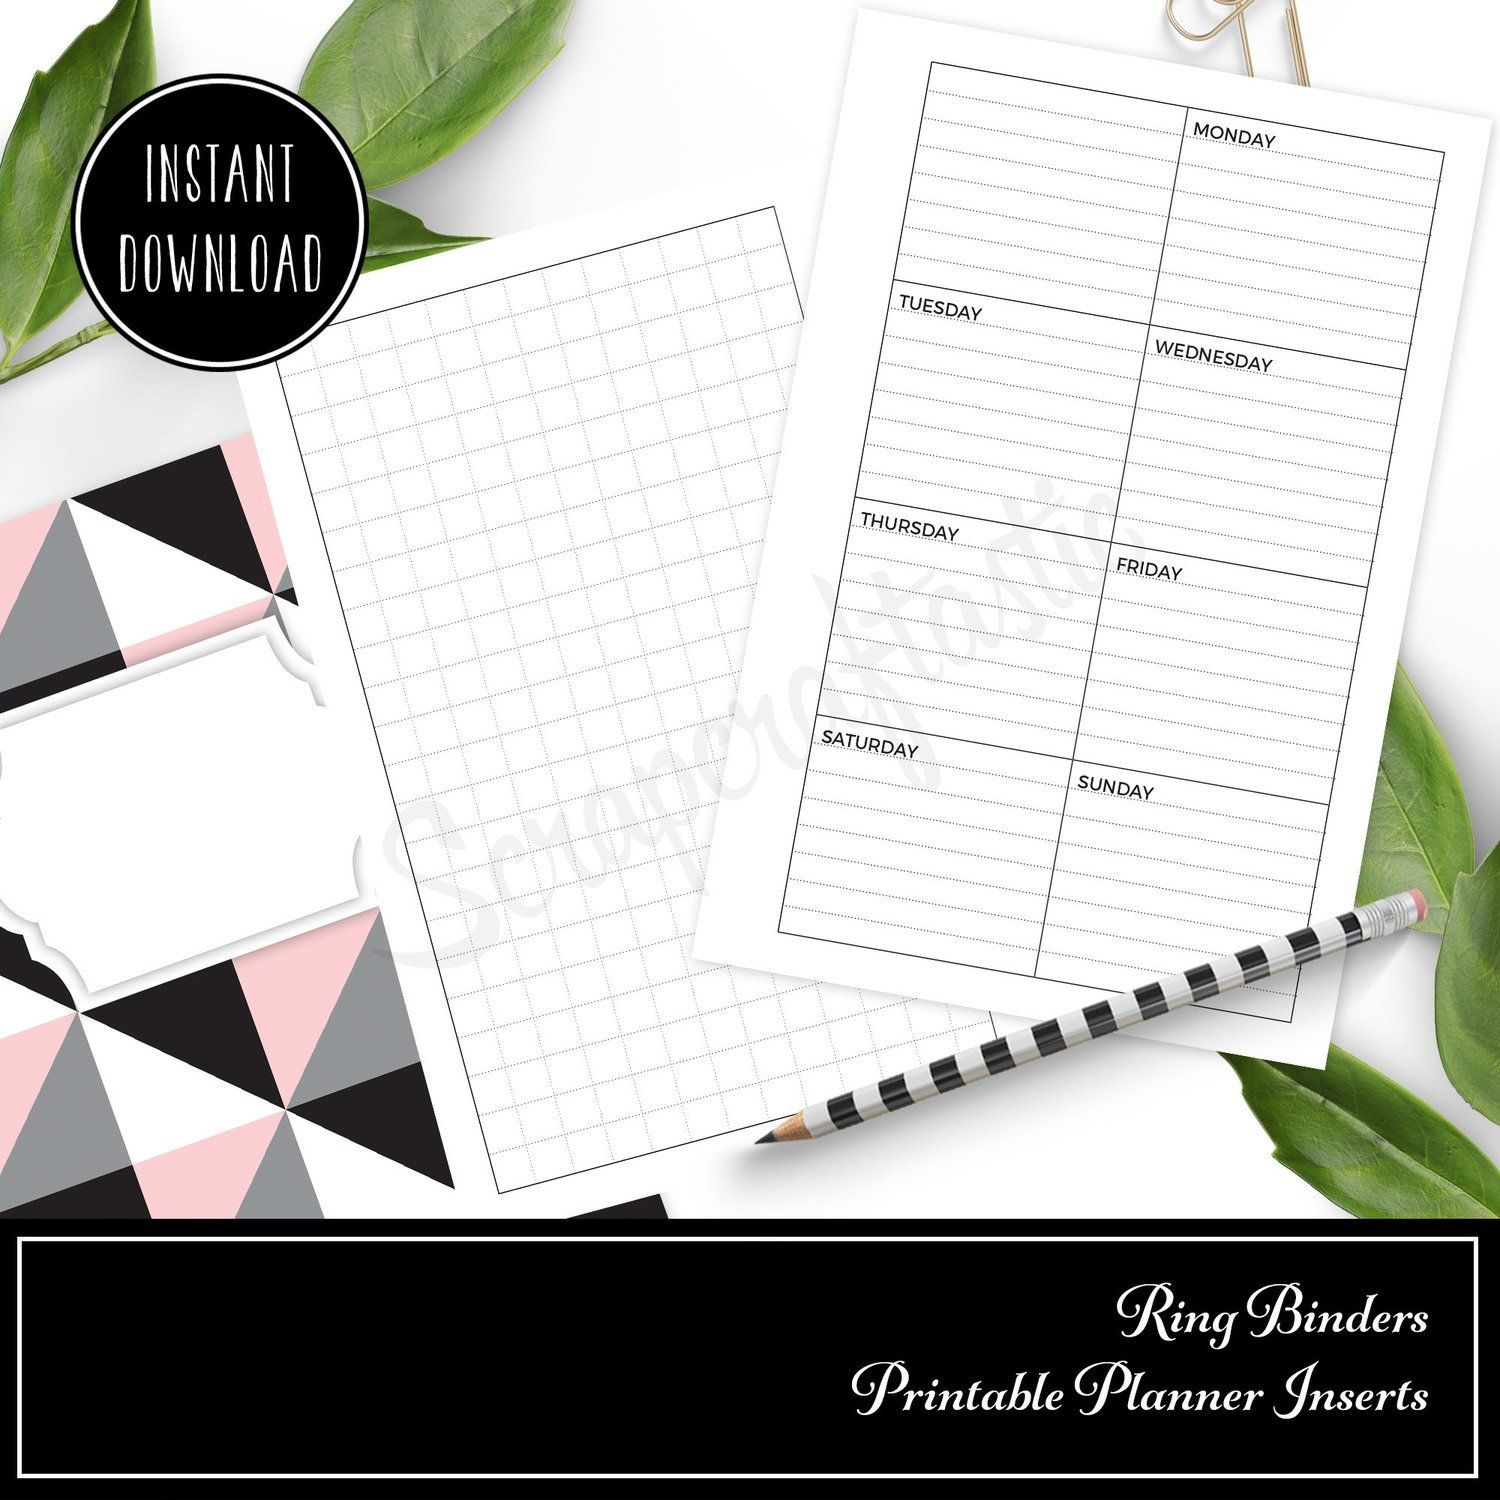 CLASSIC DISCS - Grid and Boxed Lined Undated Weekly Printable Planner Insert